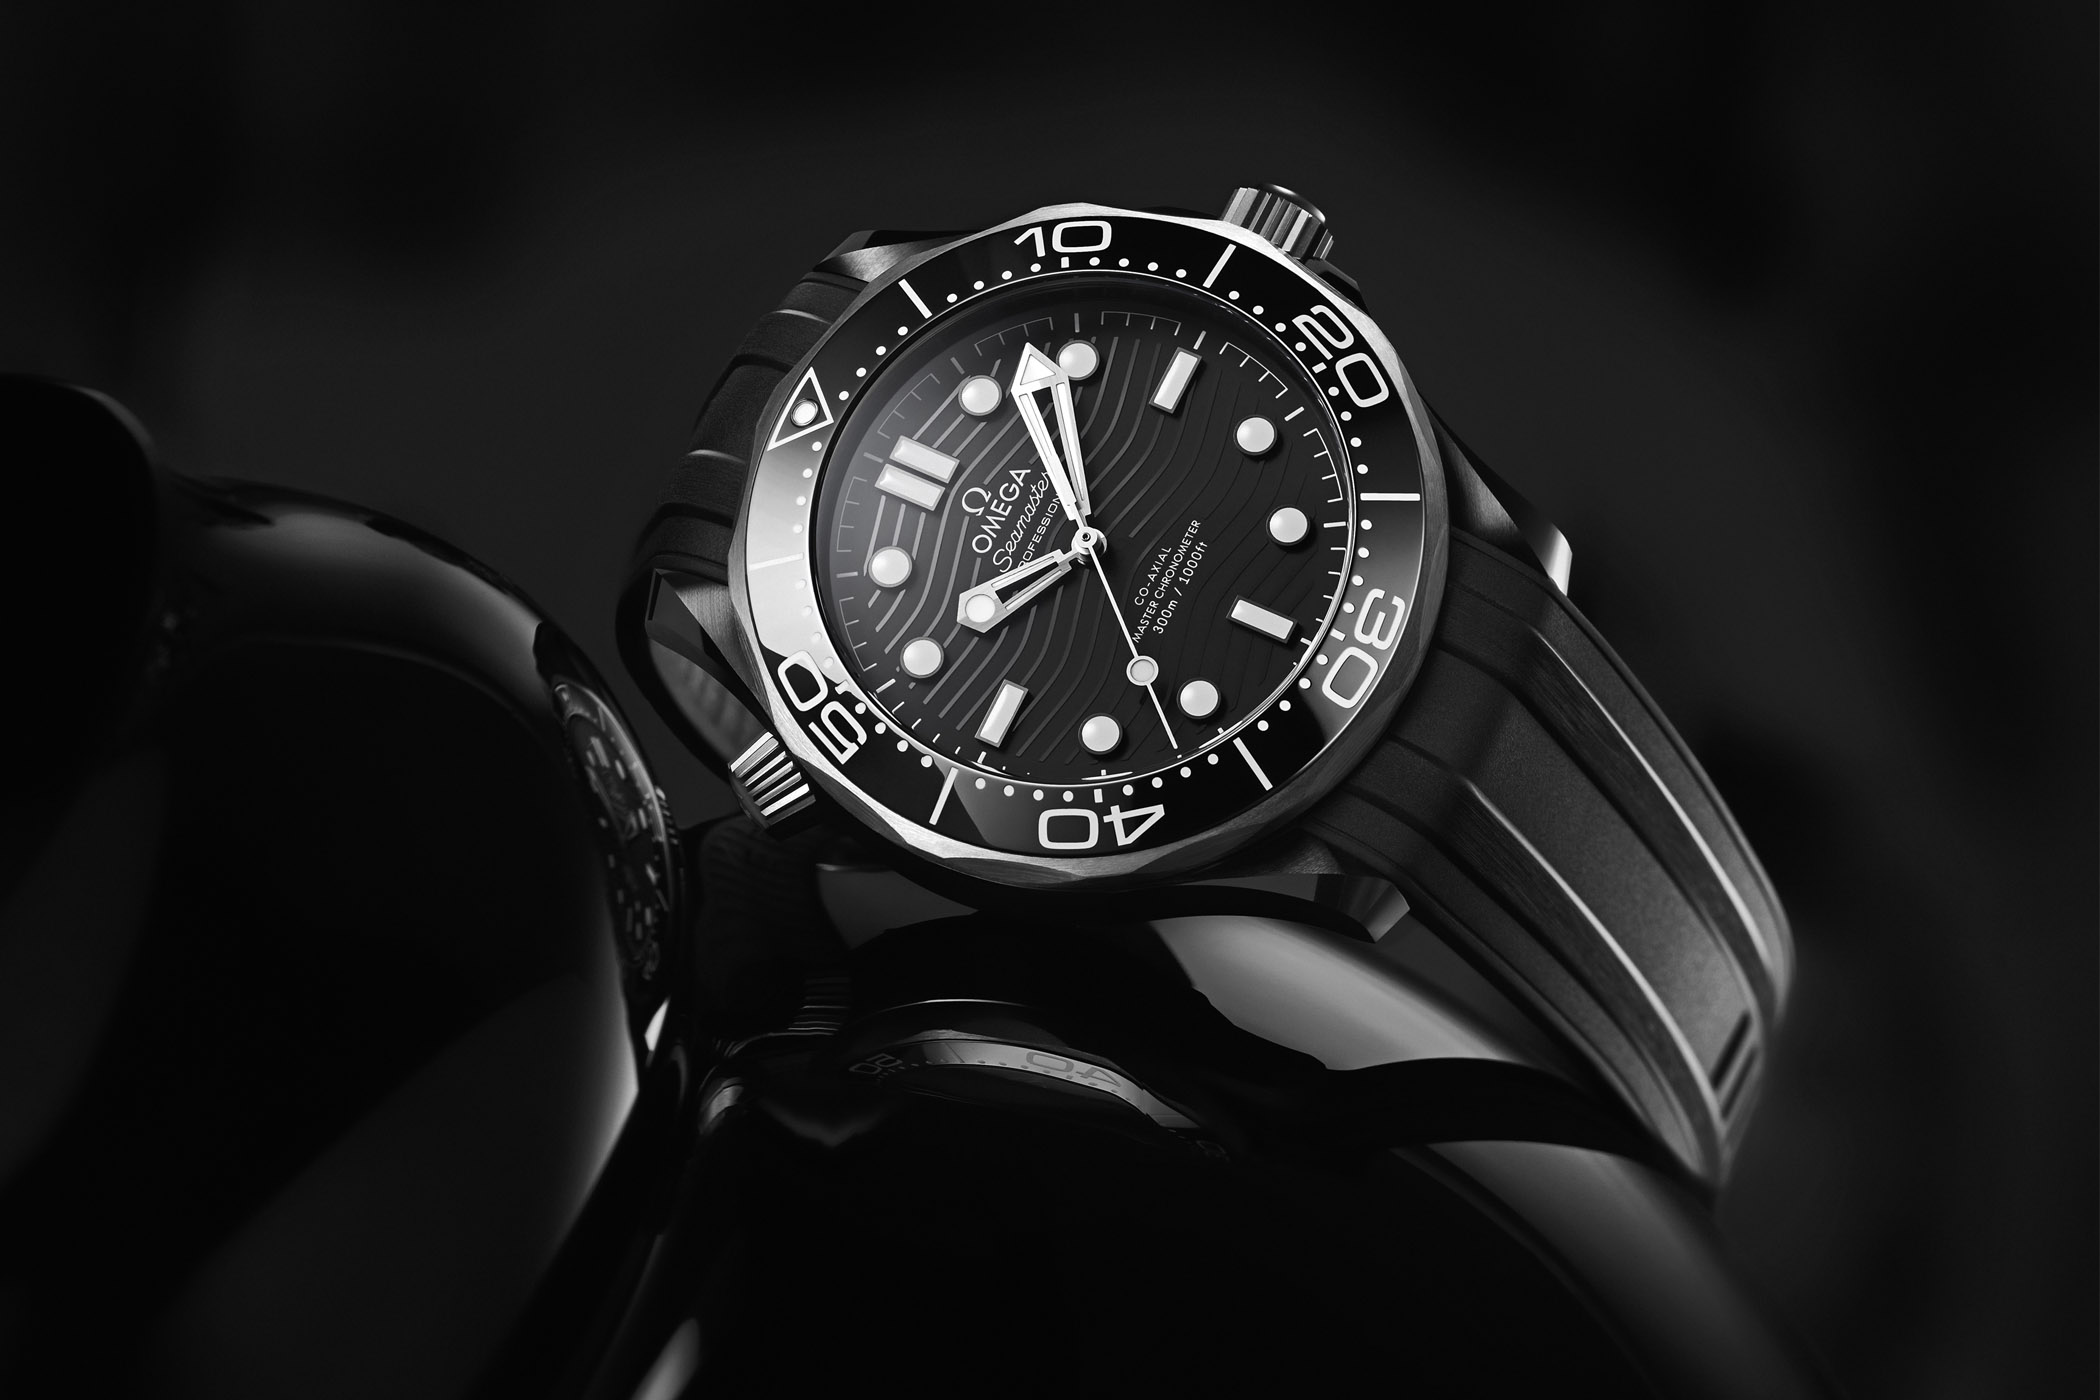 Omega Seamaster Diver 300M Ceramic-and-Titanium 210.92.44.20.01.001 collection 2019